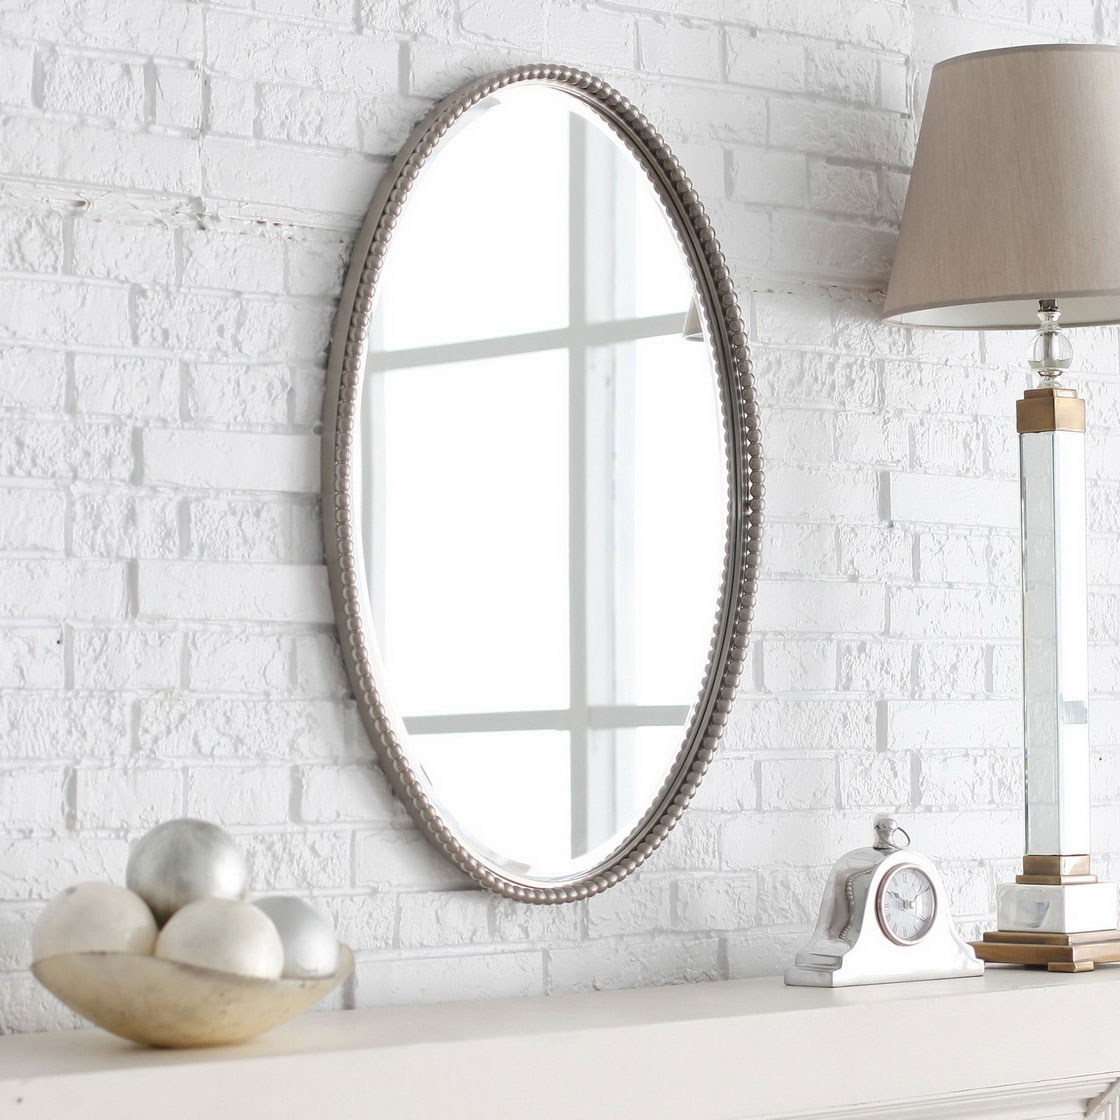 Unique Oval Bathroom Mirrors On Sale 67 For Your With Oval Inside Unique Mirrors For Sale (Image 13 of 15)